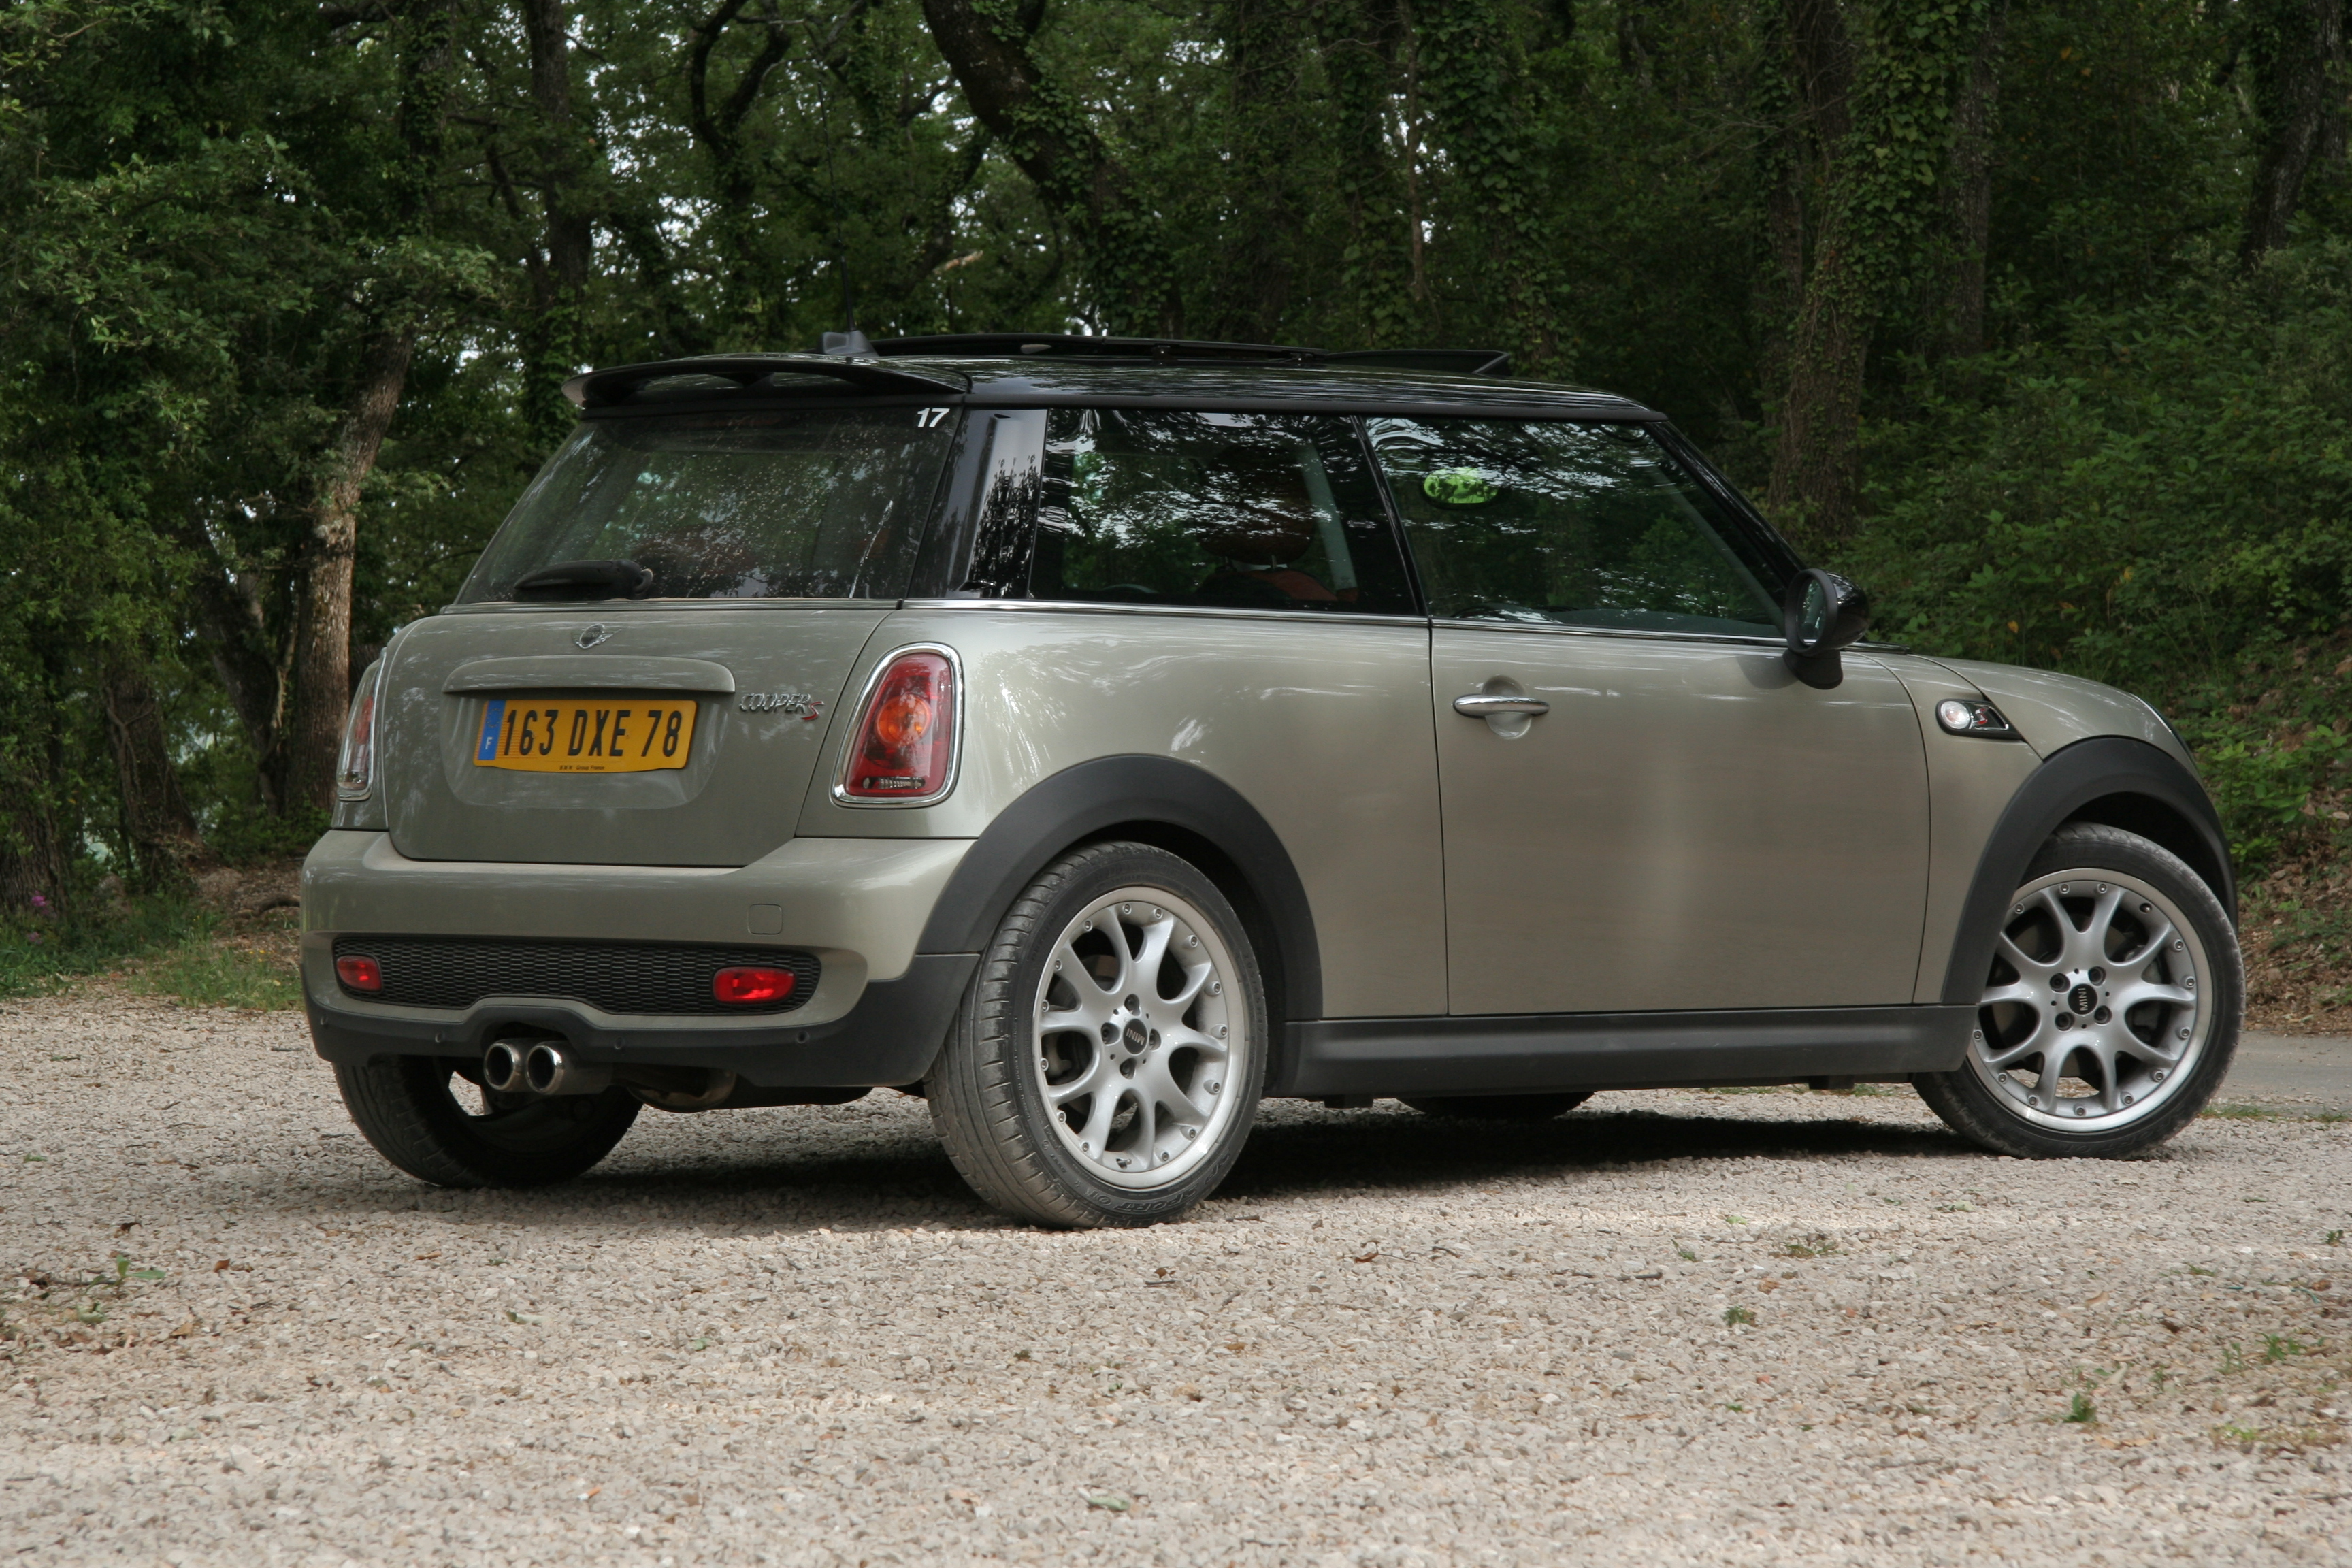 2010 mini cooper s ii pictures information and specs. Black Bedroom Furniture Sets. Home Design Ideas